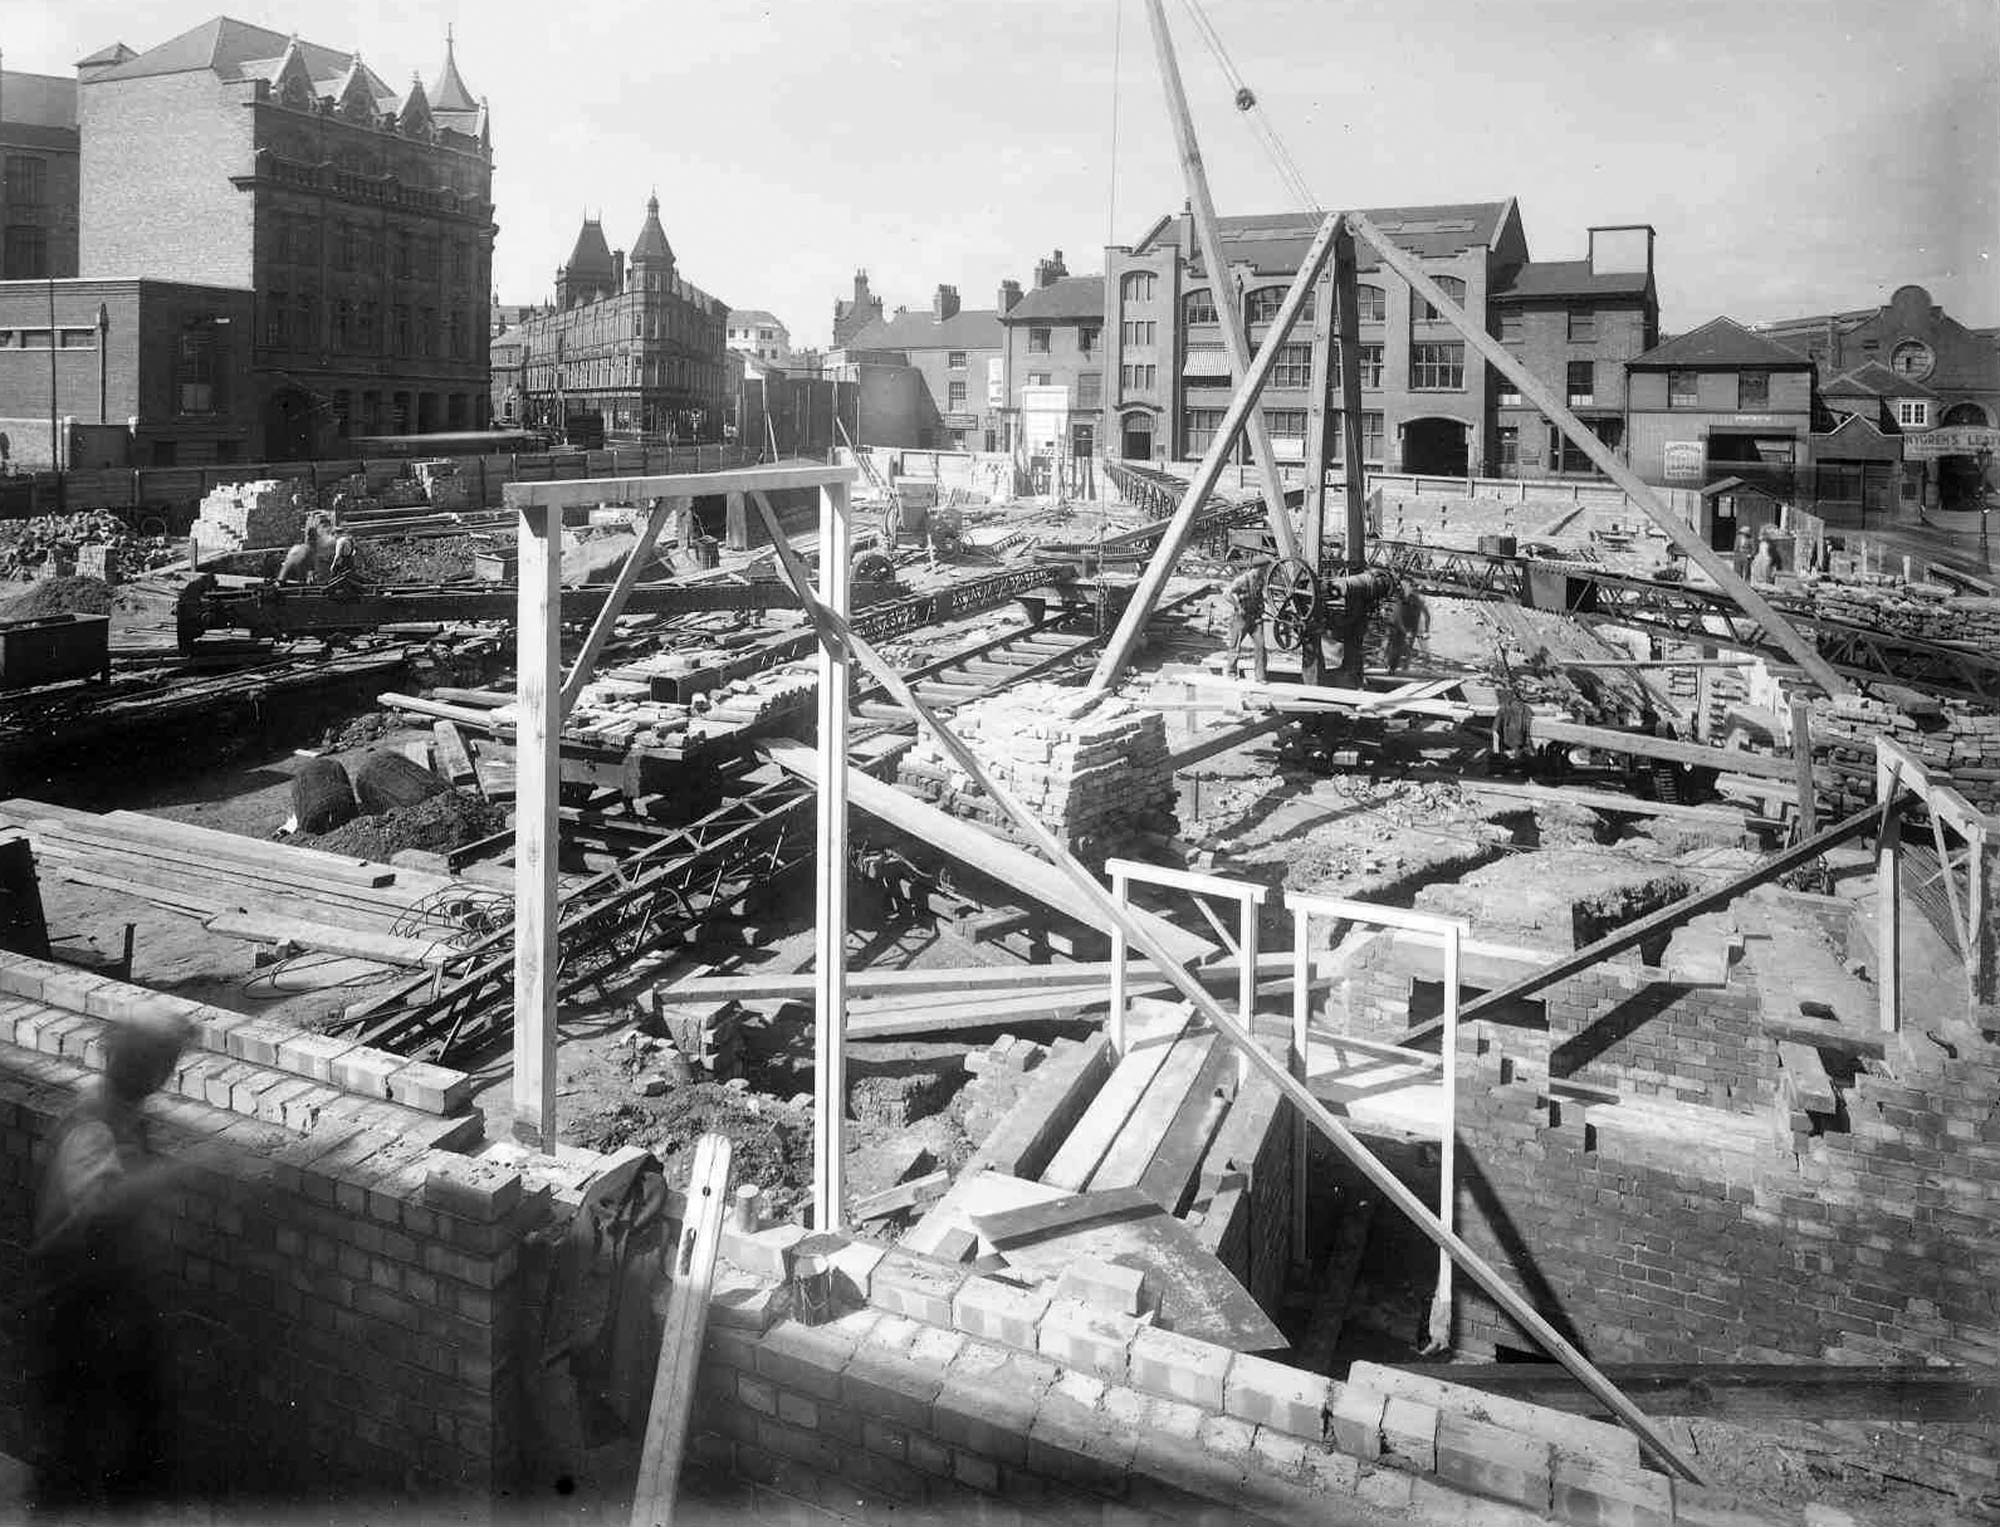 Looking from the rear of the construction site up towards Charles Street, 1937 - Affective Digital Histories, University of Leicester